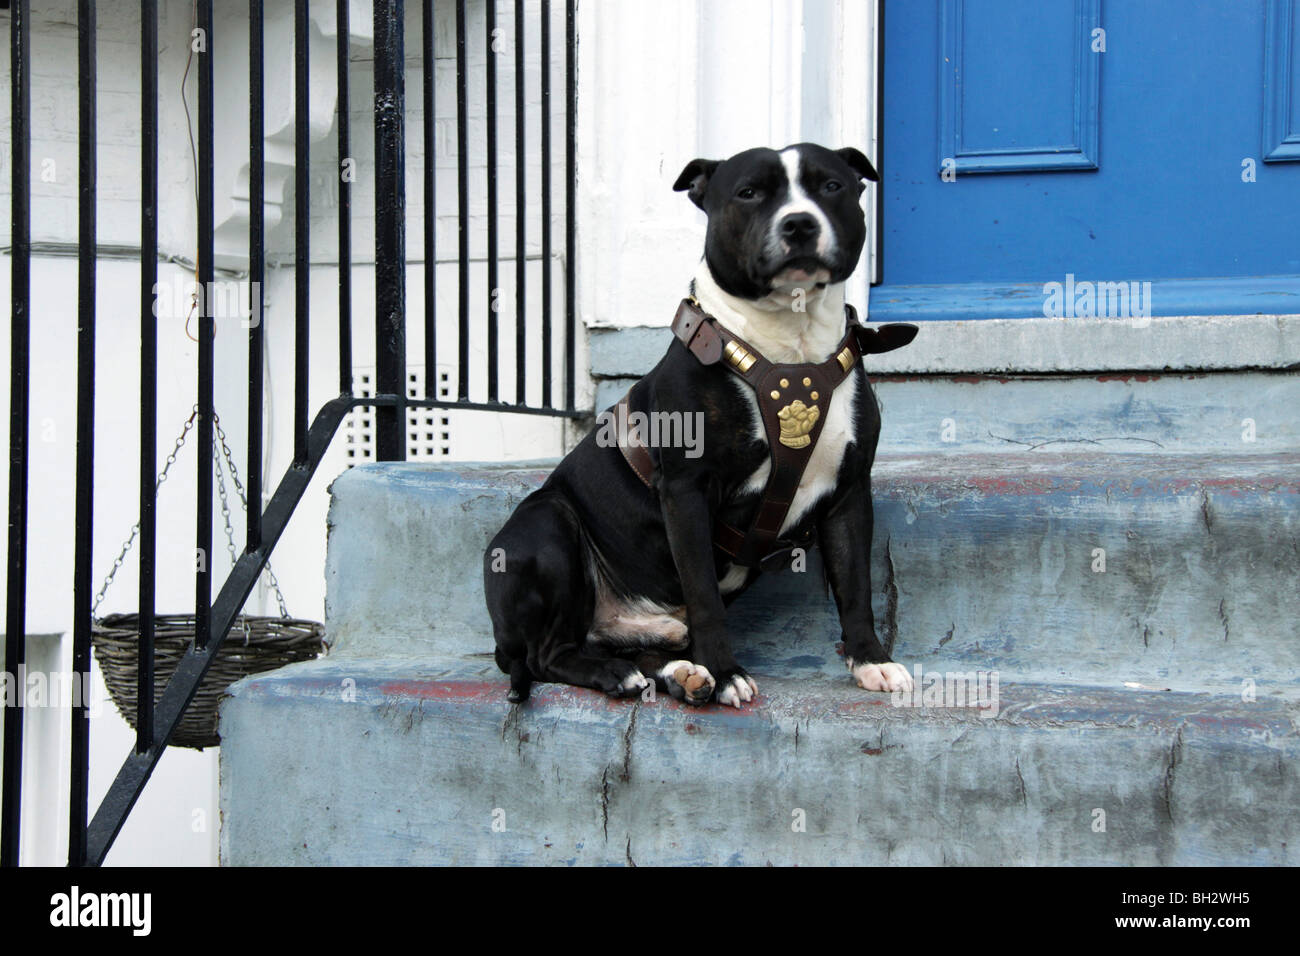 Staffordshire Bull Terrier on the steps of a house in London - Stock Image